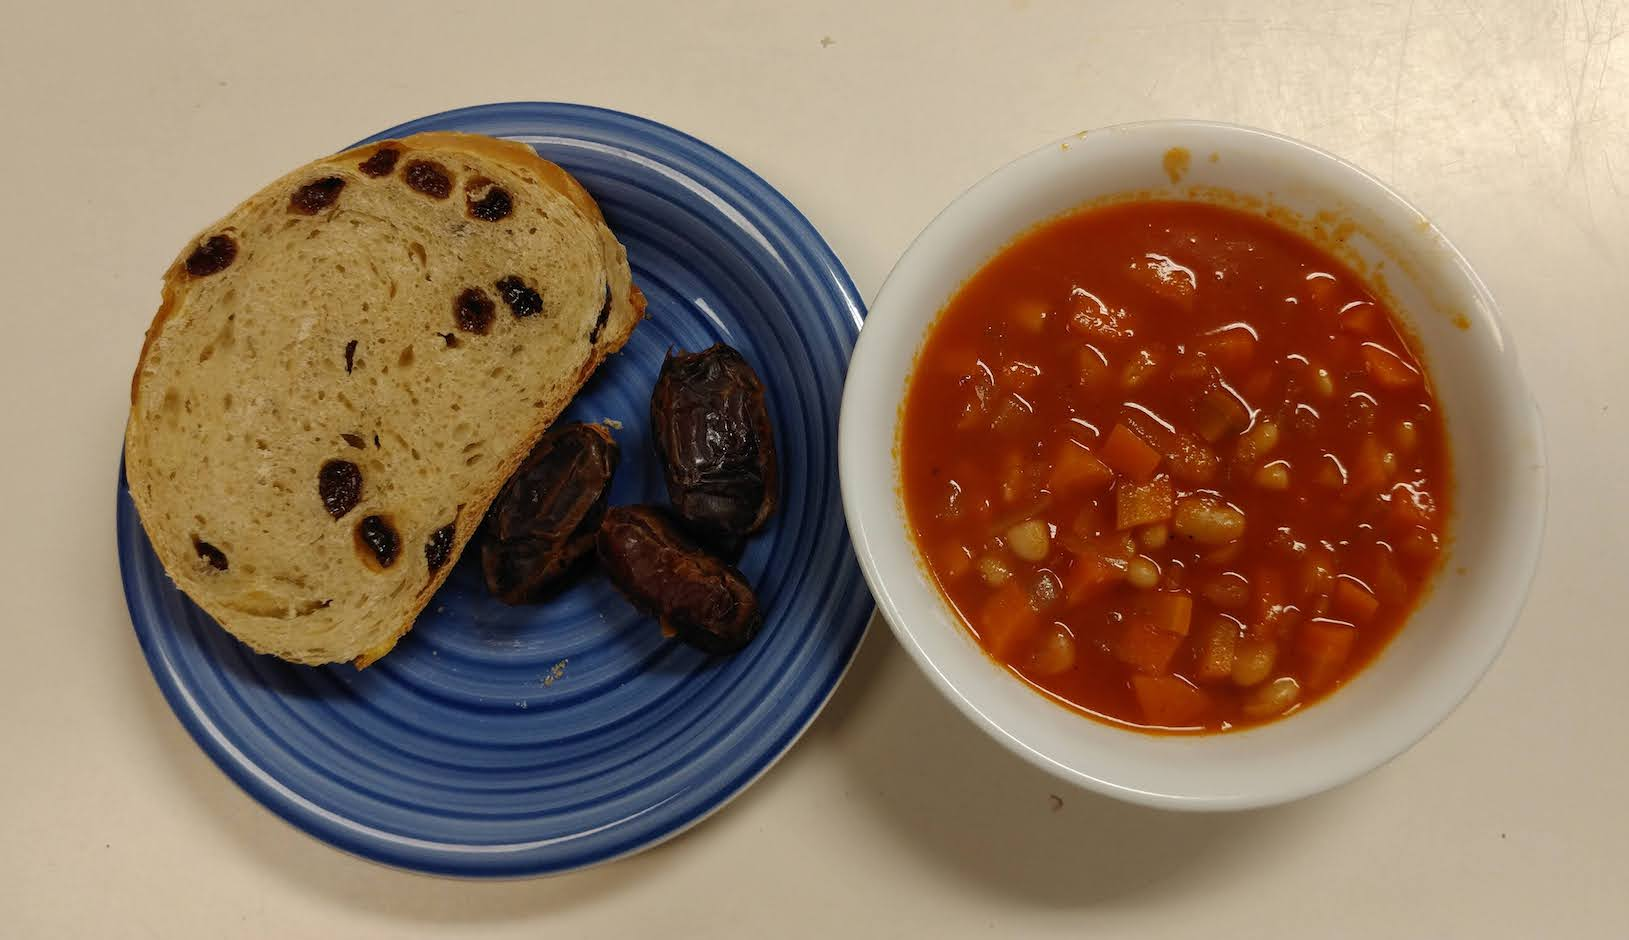 soup with side of bread and dates